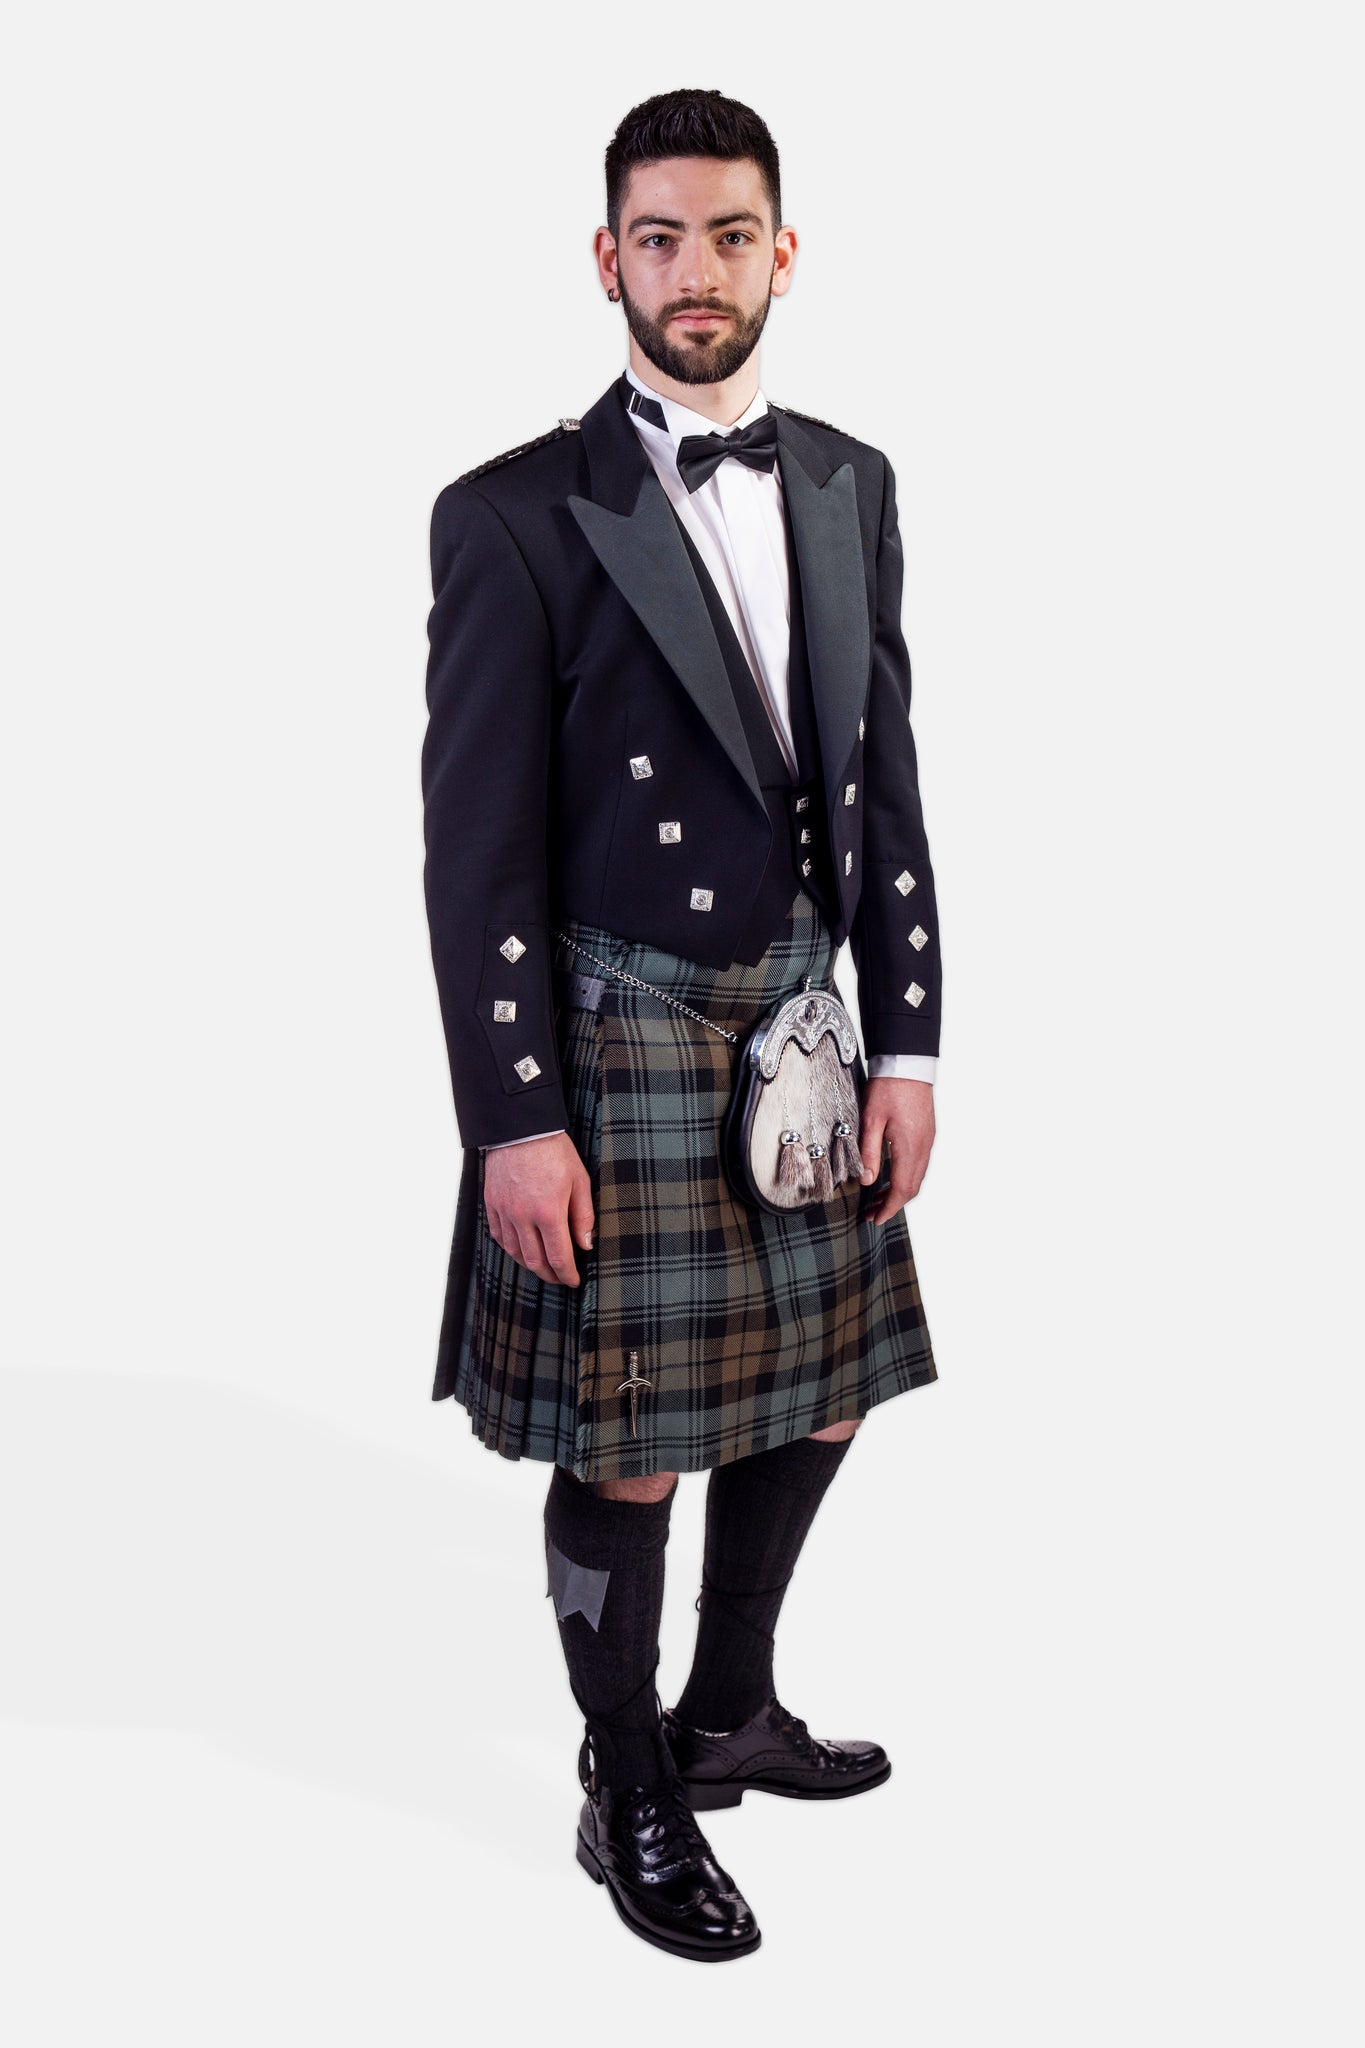 Black Watch Weathered / Prince Charlie Hire Outfit